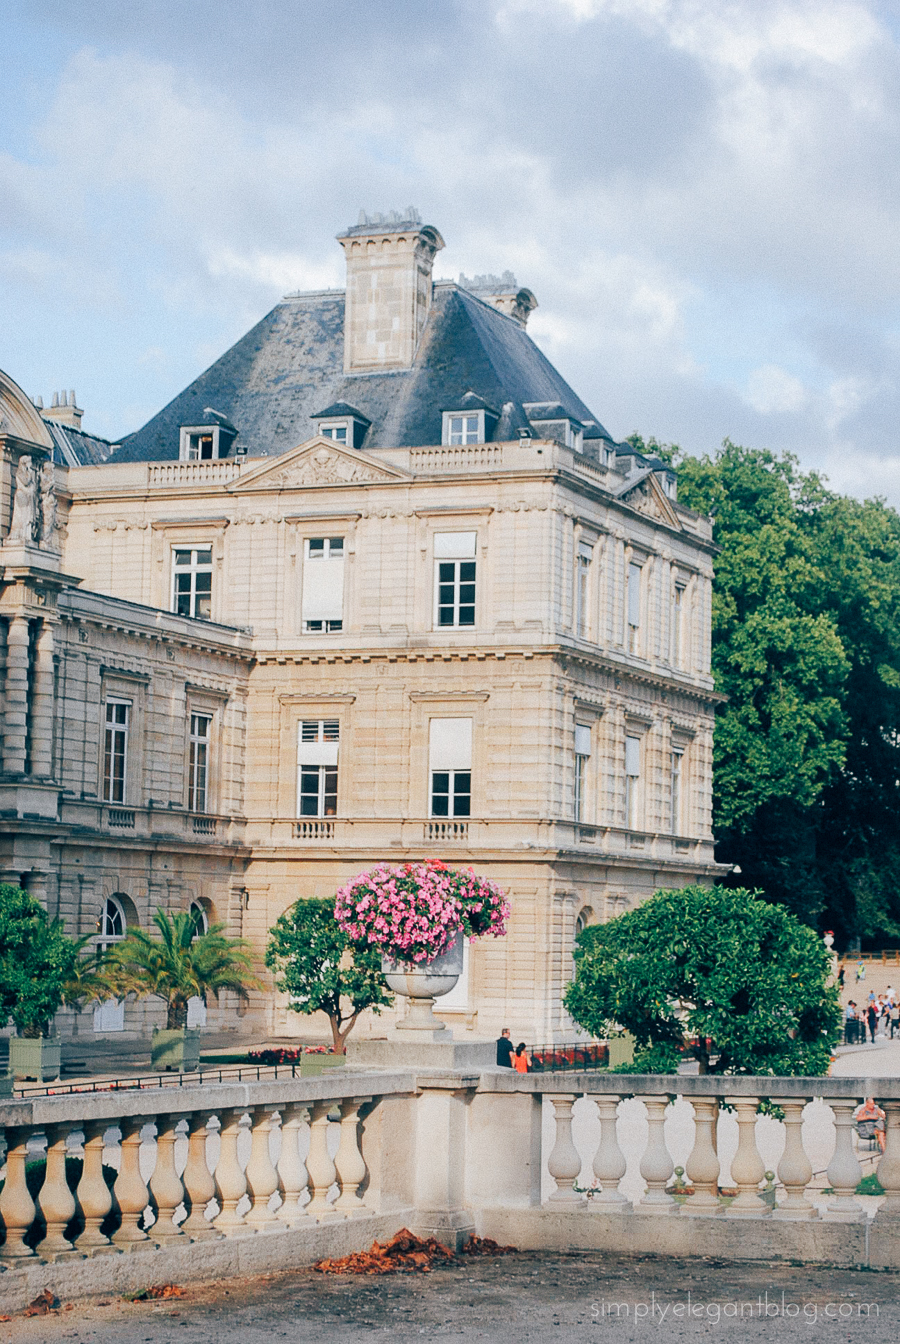 Simply Elegant / Paris Vacation Photographs - Luxembourg Gardens